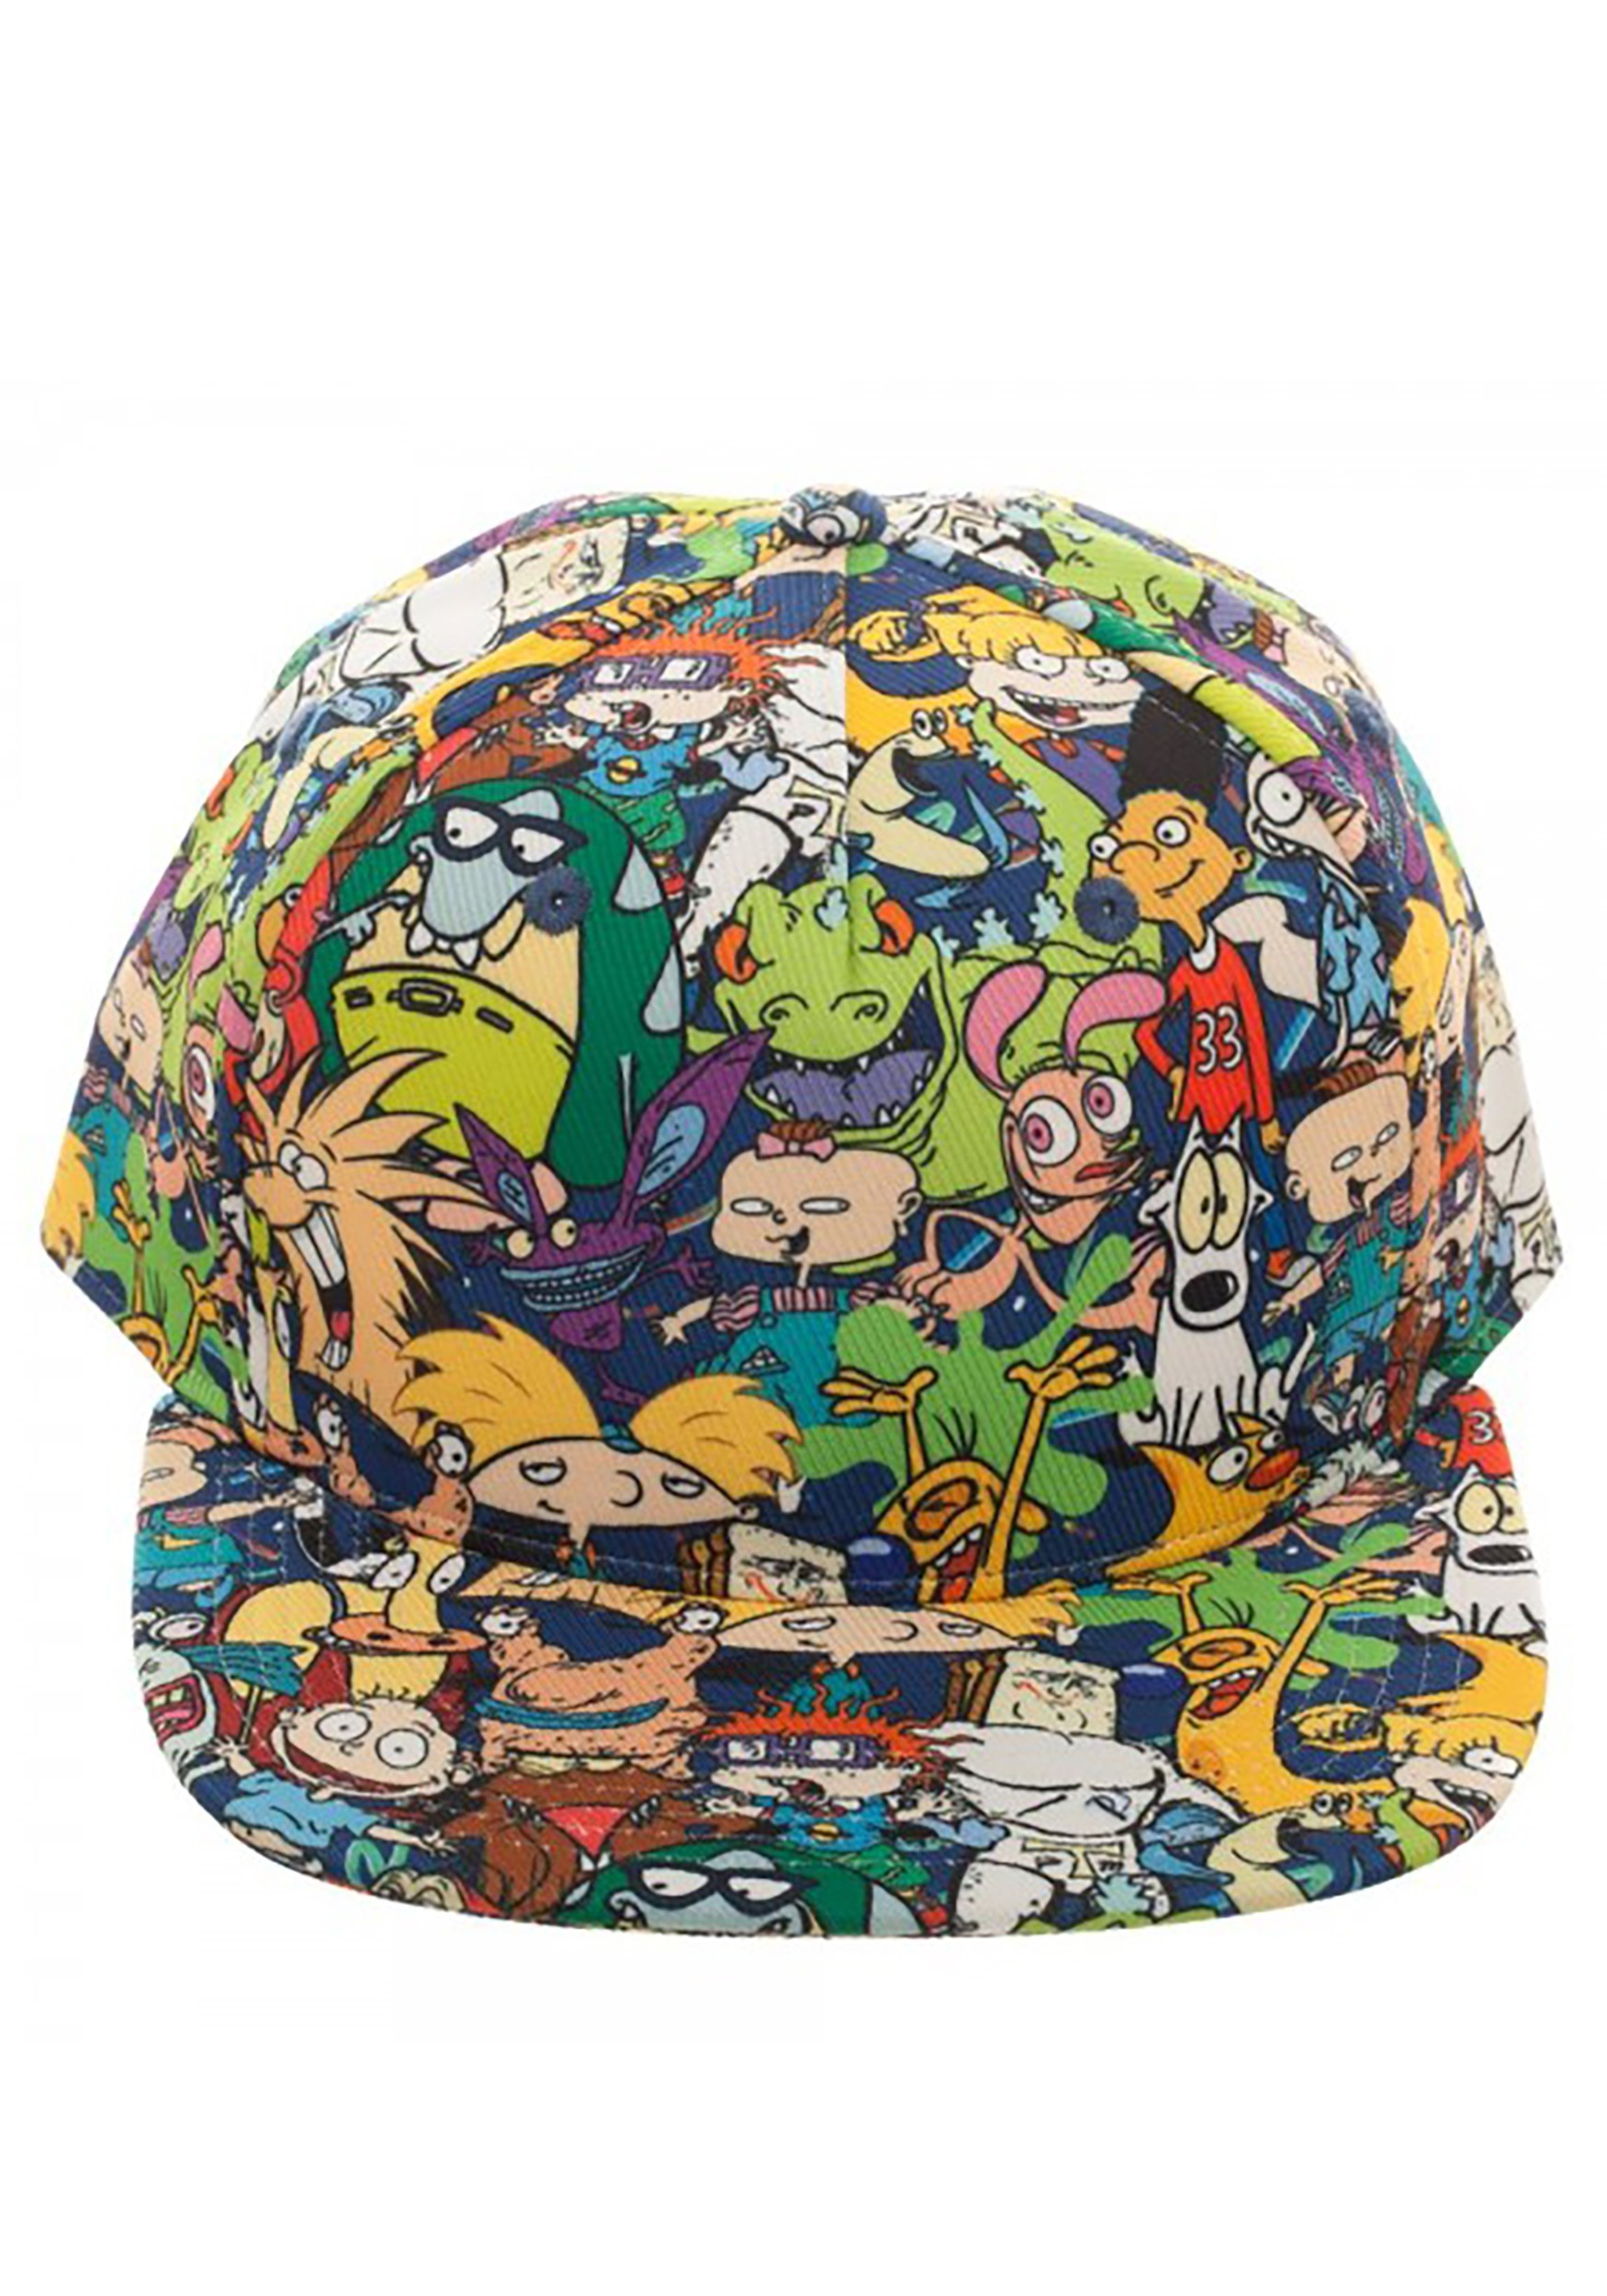 brand new 166f1 30289 Nick Rewind All-Over Sublimated Print Snapback Hat